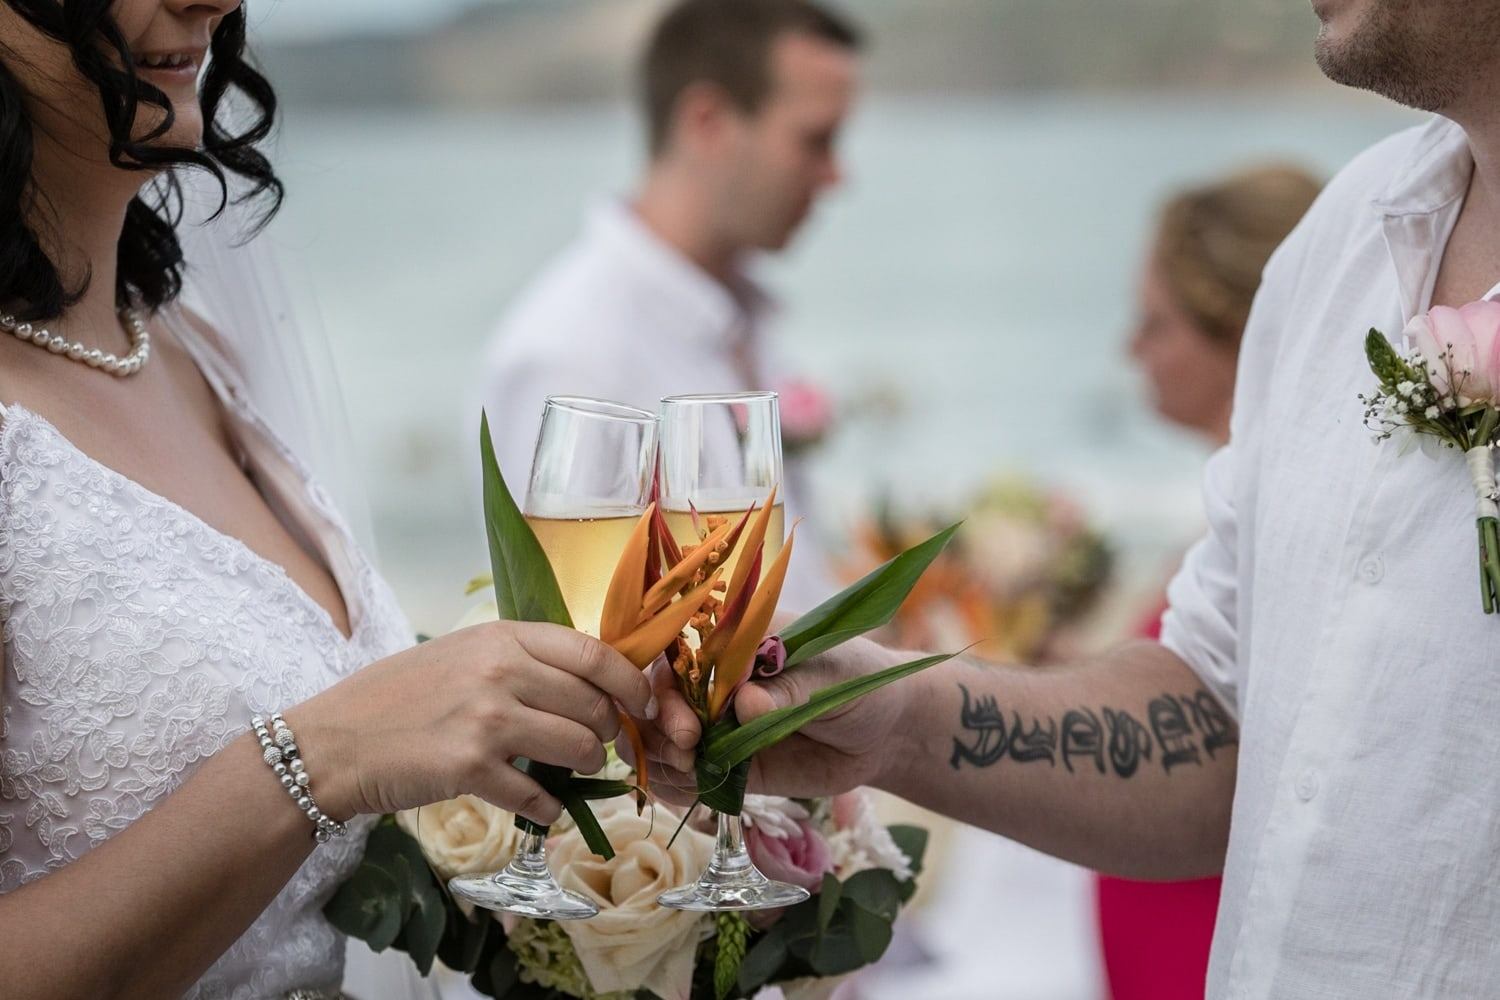 Champaign wedding flutes decorated with exotic Costa Rica flowers.